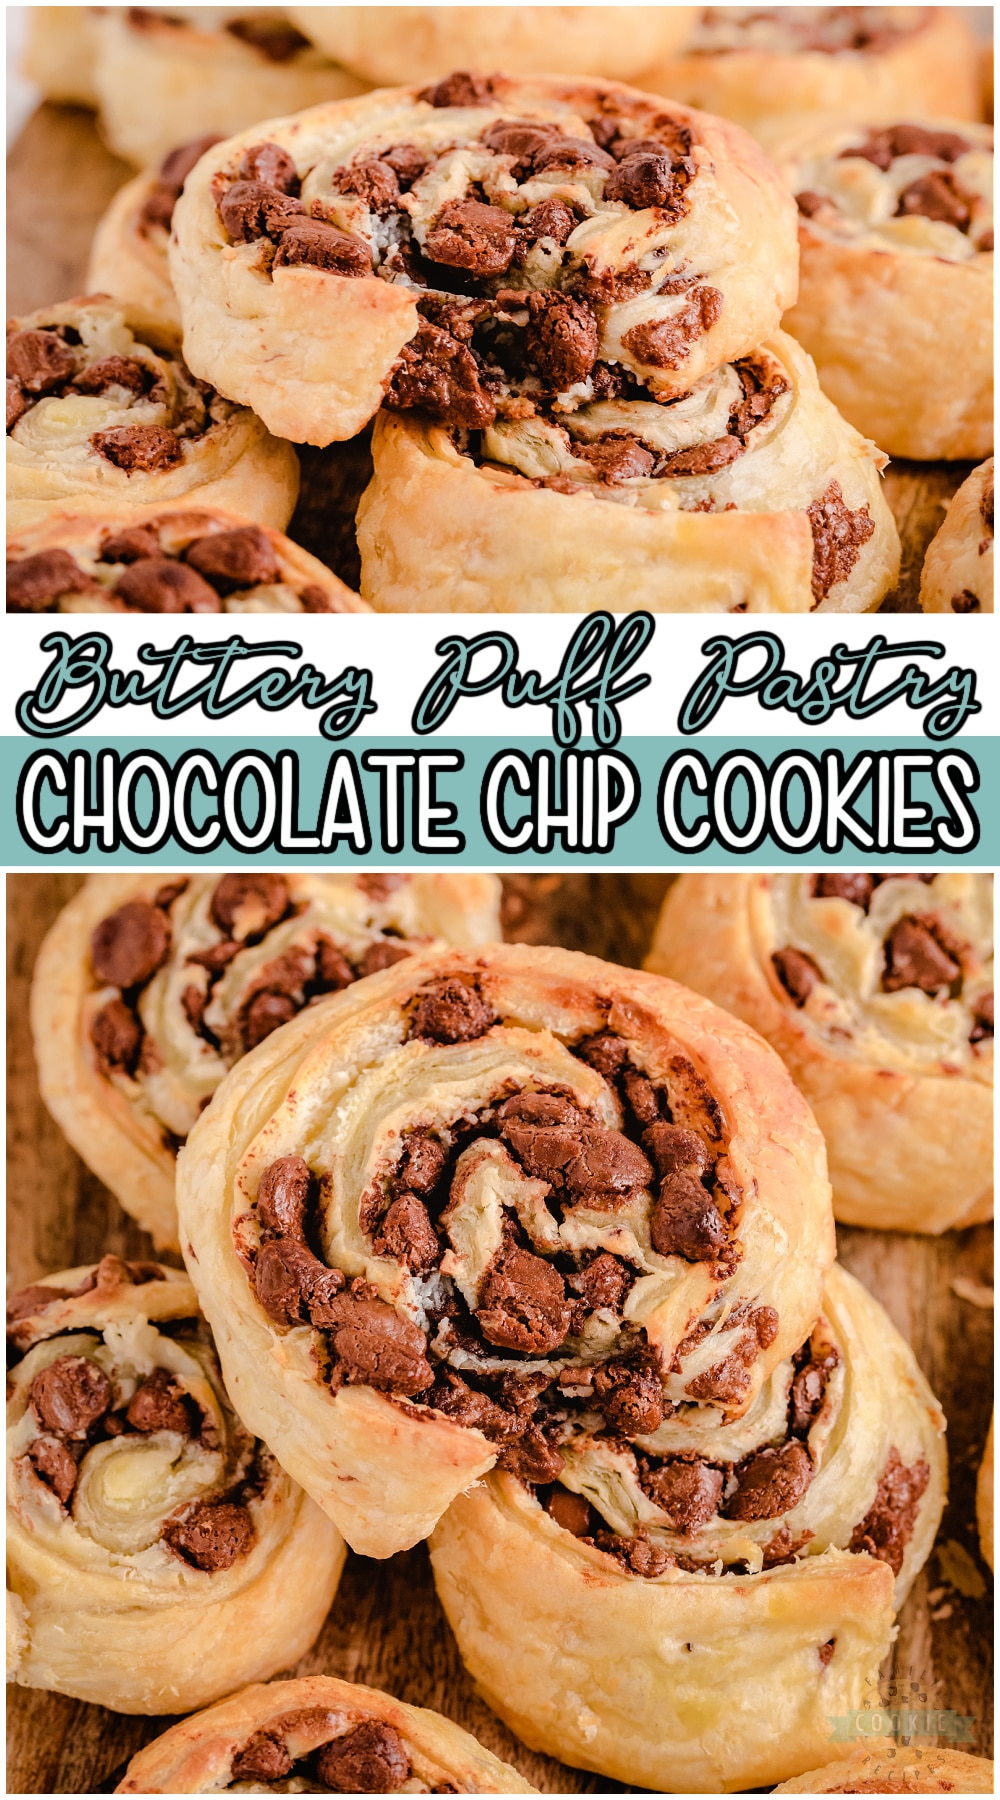 """Chocolate Chip Puff Pastry Cookies are unique cookies made with just 4 simple ingredients! Buttery Puff Pastry serves as the """"cookie dough"""" for these deliciously flaky cream cheese chocolate chip cookies.#cookies #puffpastry #chocolate #chocolatechip #baking #easyrecipe from FAMILY COOKIE RECIPES via @familycookierecipes"""